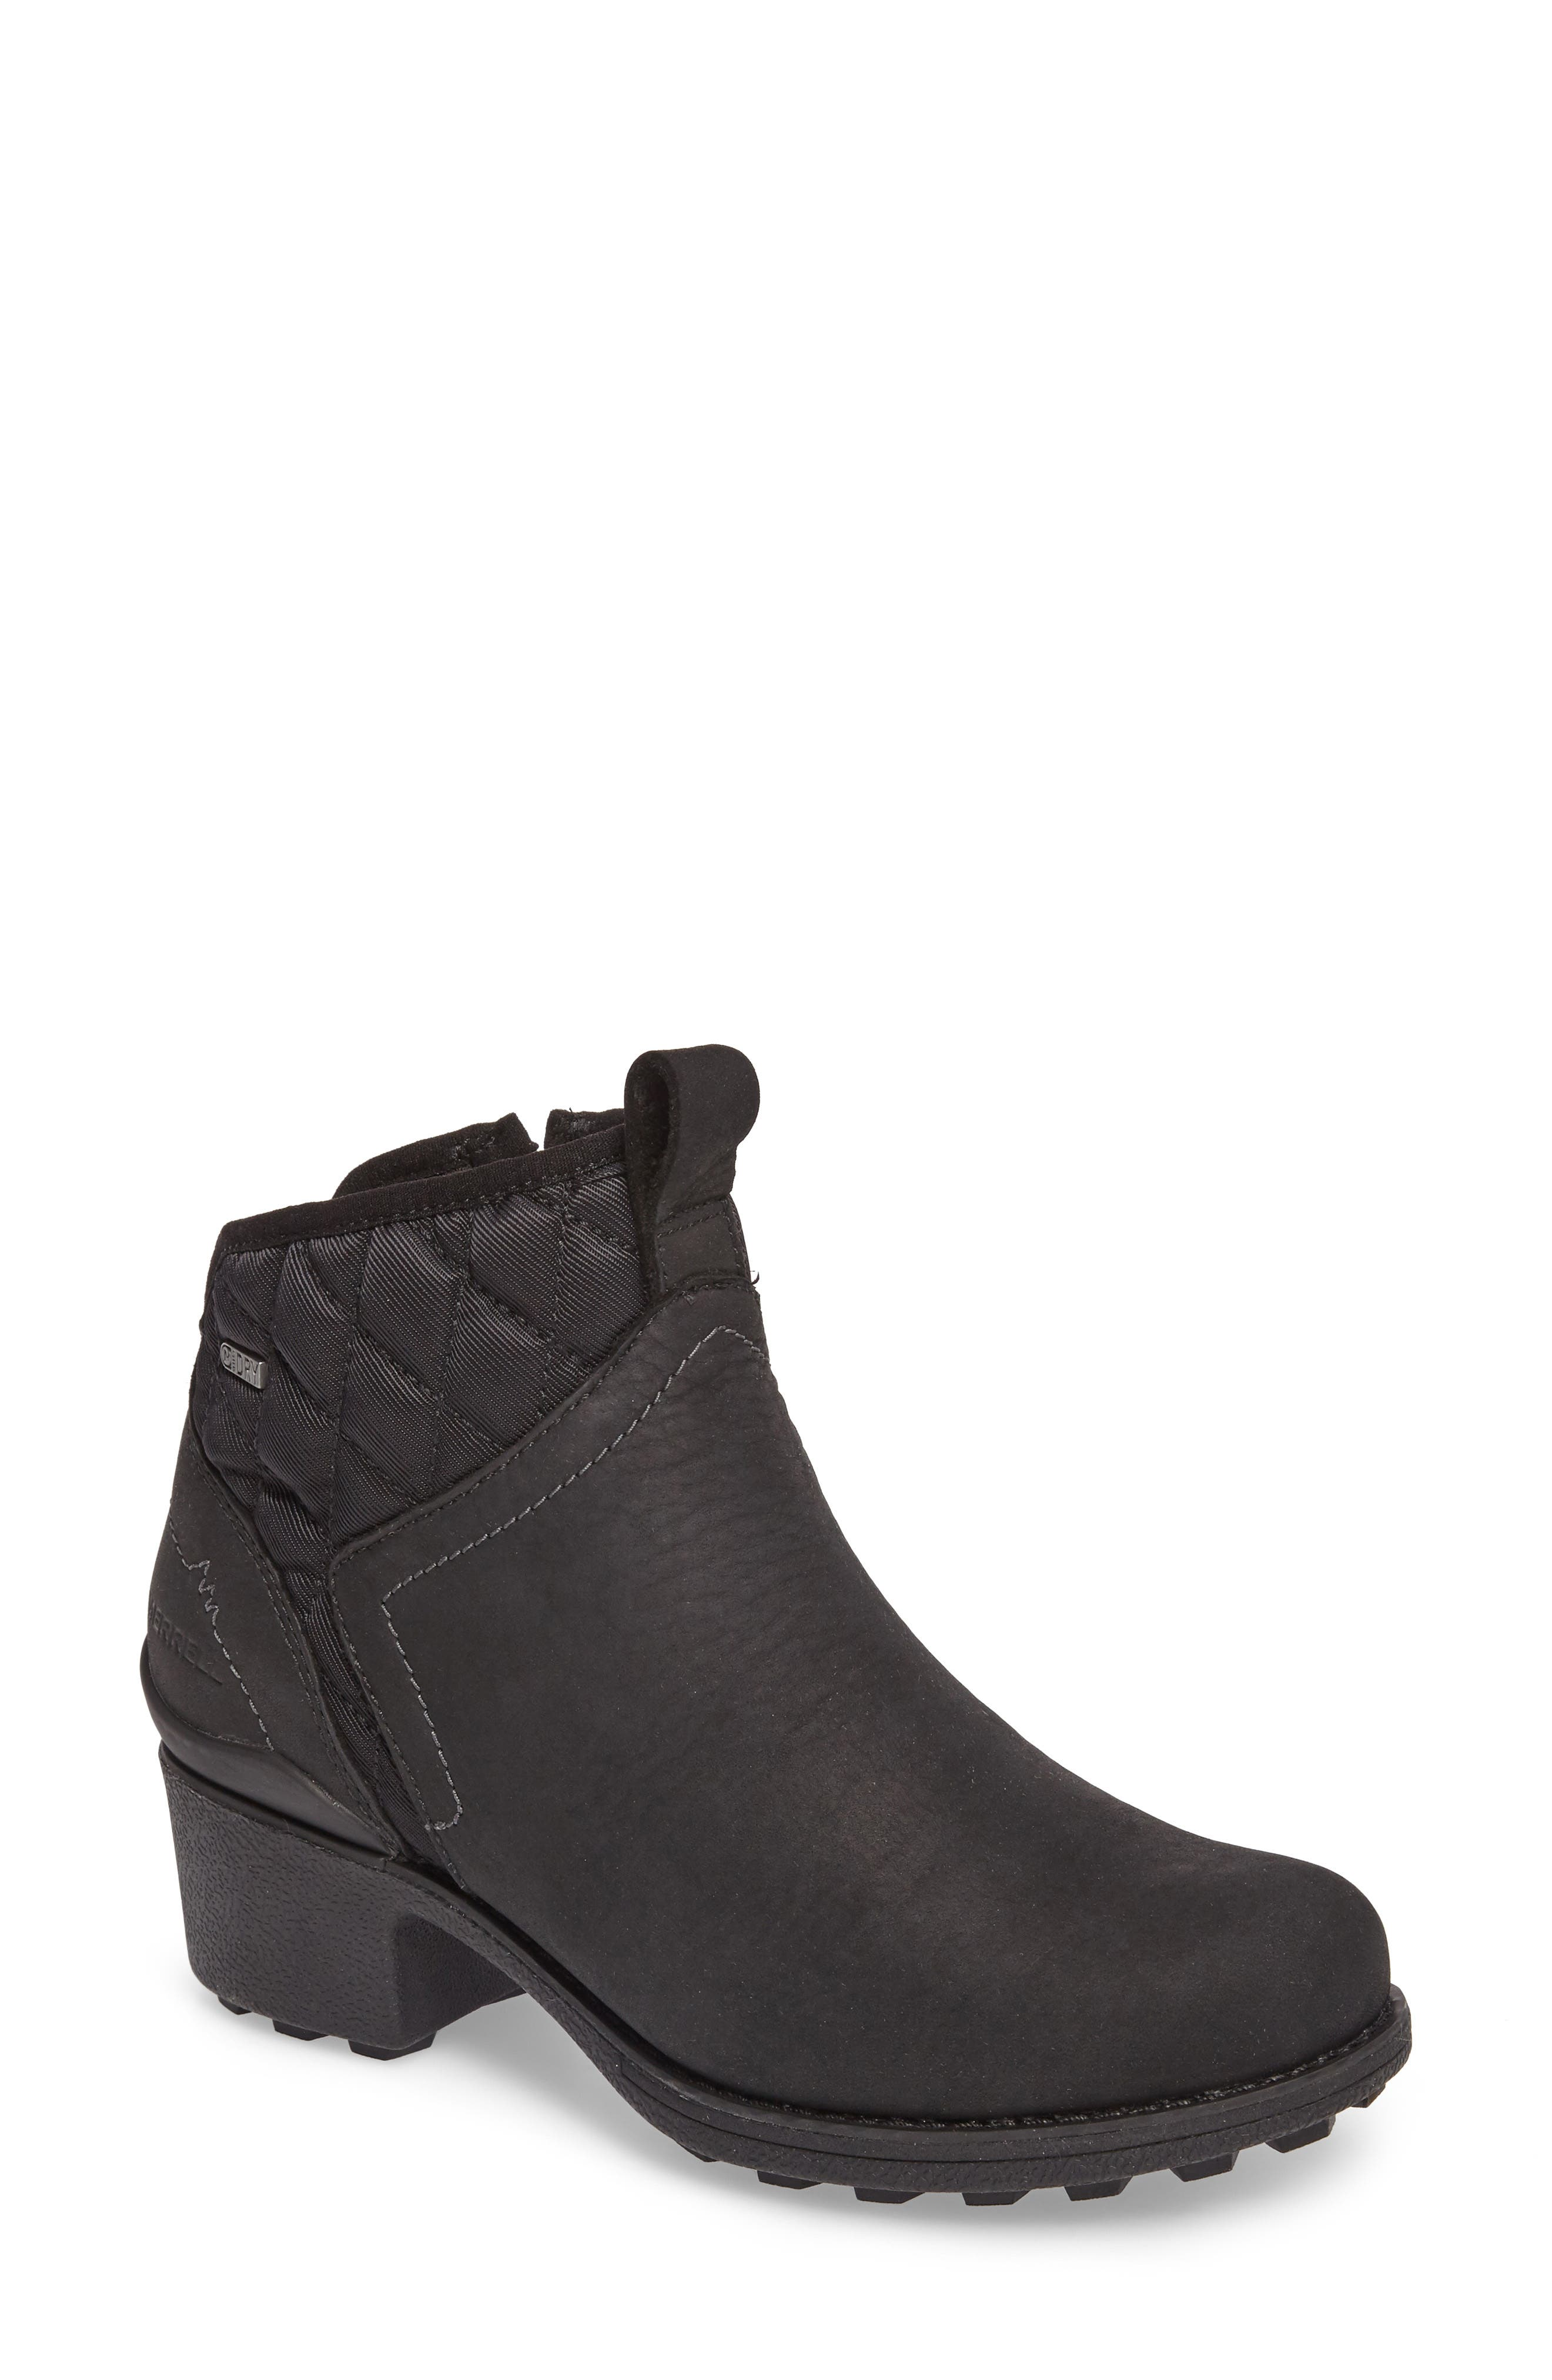 Main Image - Merrell Chateau Mid Pull Waterproof Bootie (Women)